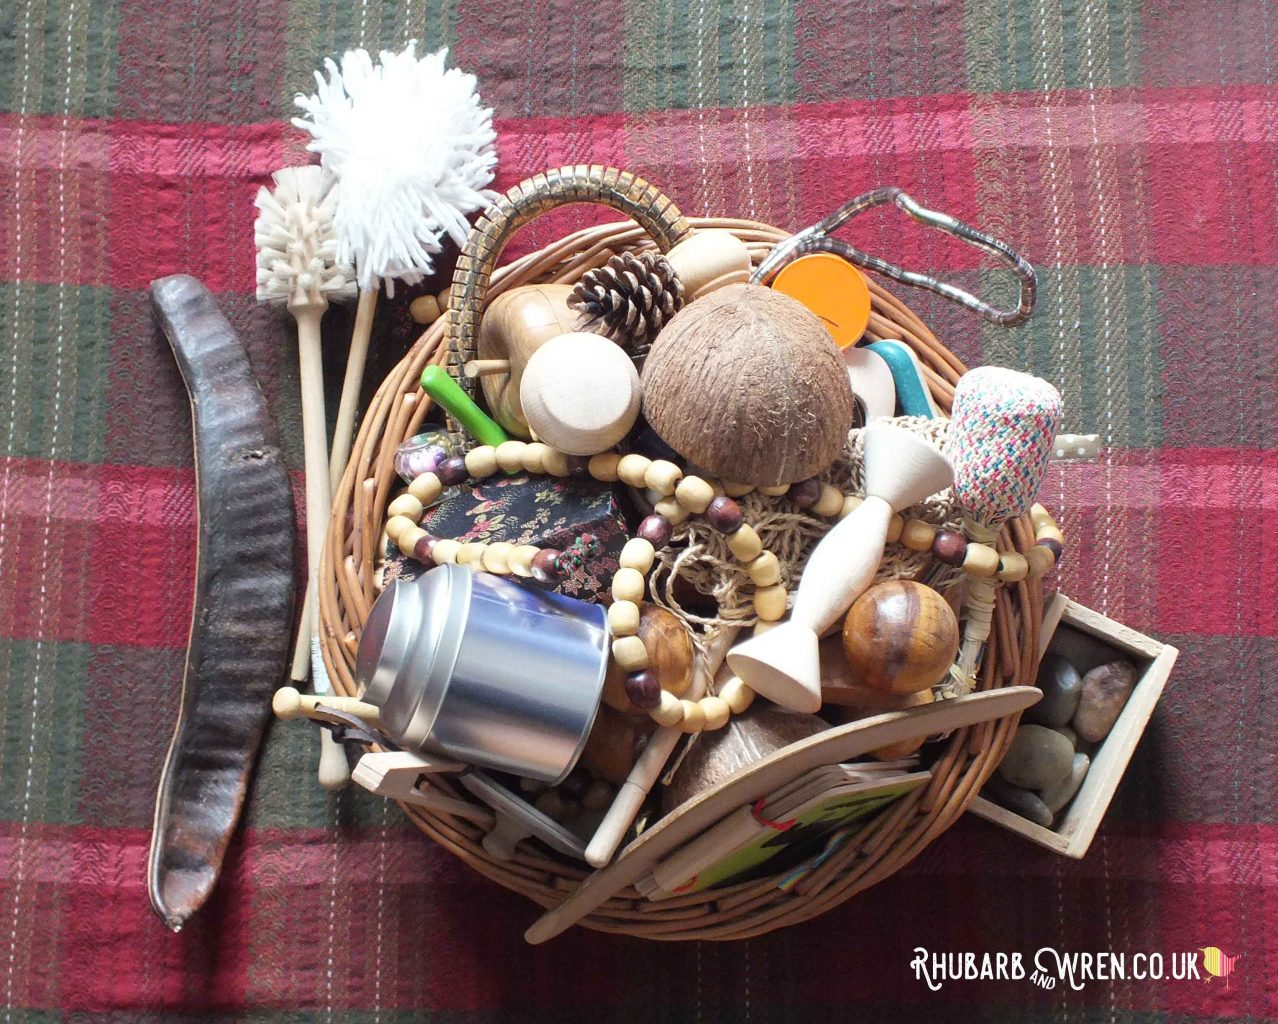 A treasure basket for babies